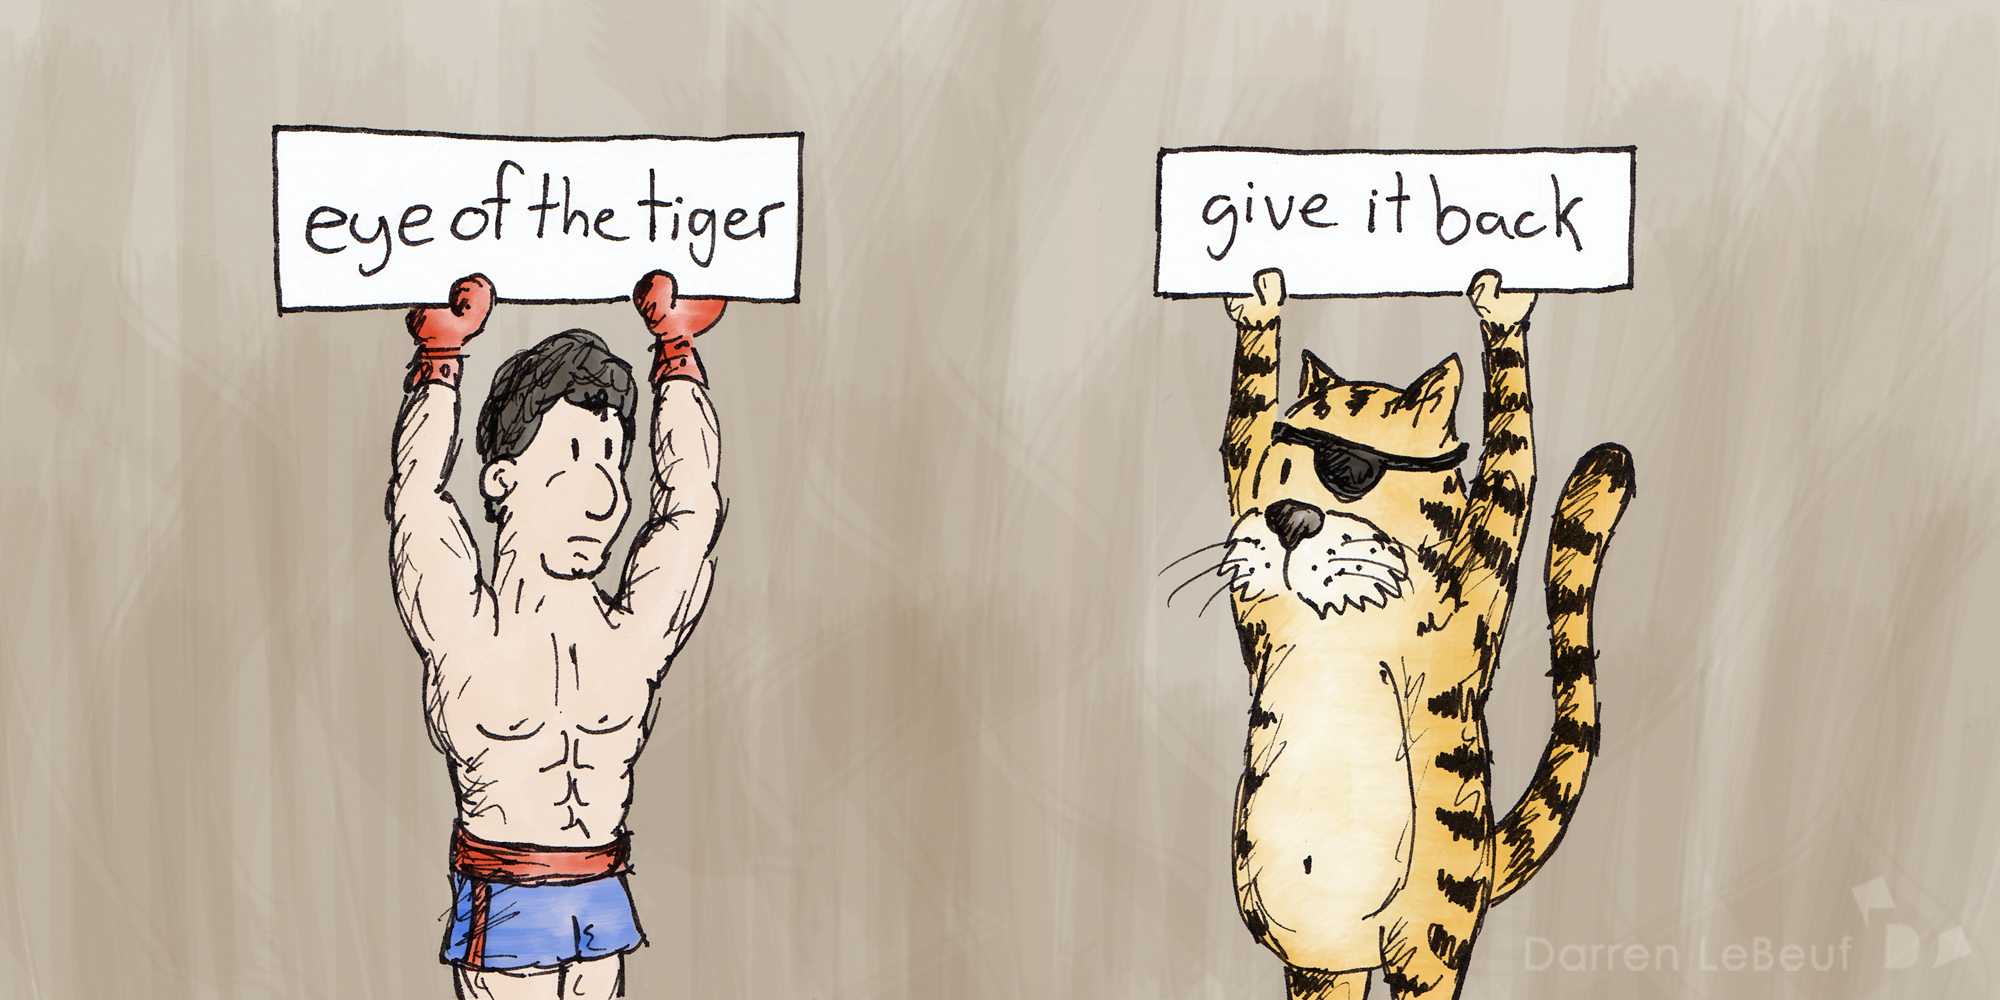 Rocky Balboa and the tiger in question - the Land of Le Beef, by Darren Lebeuf